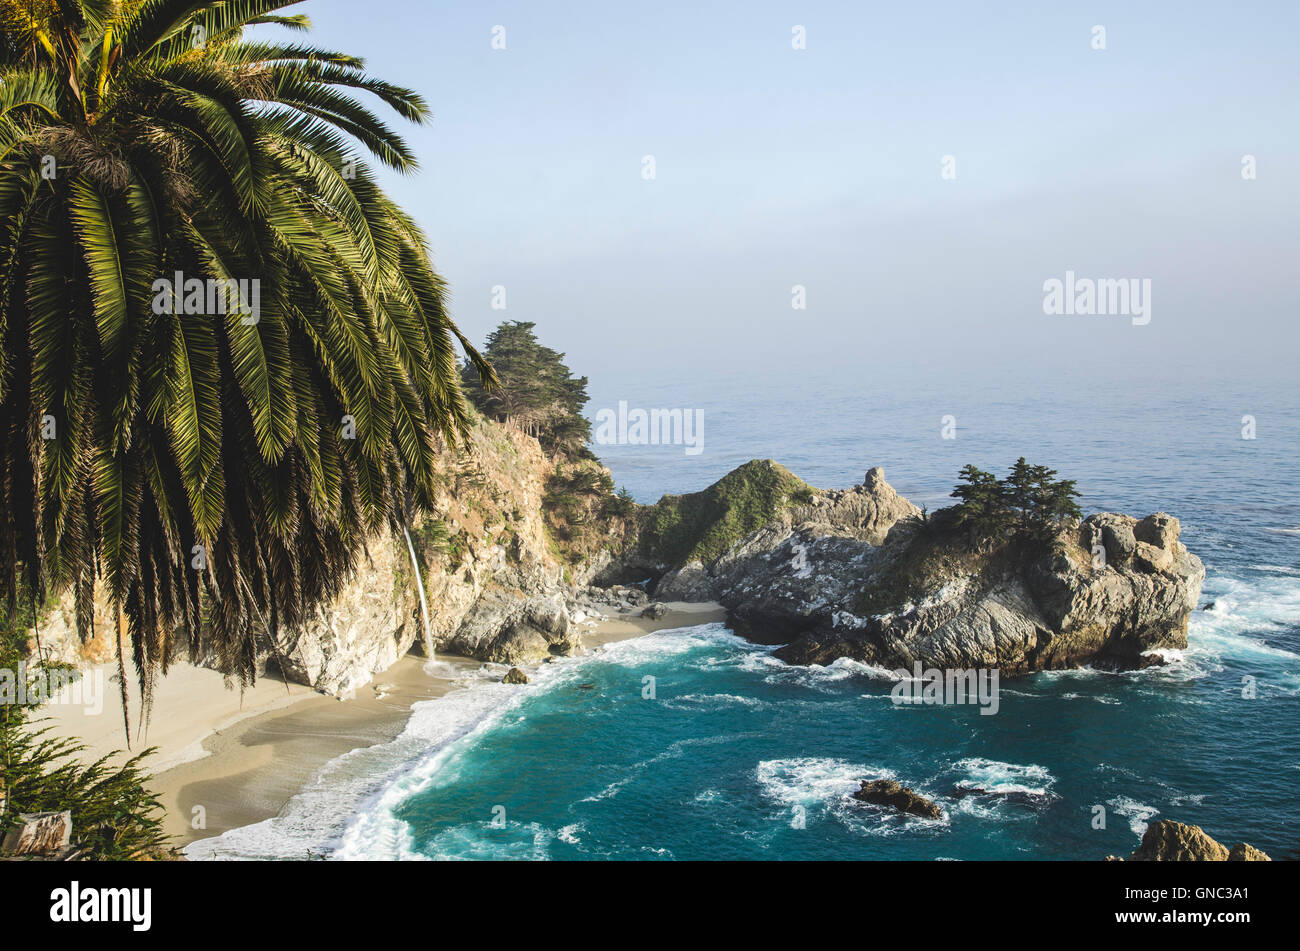 View of McWay Cove, Highway 1, Big Sur, Monterey, California Coast,  USA - Stock Image